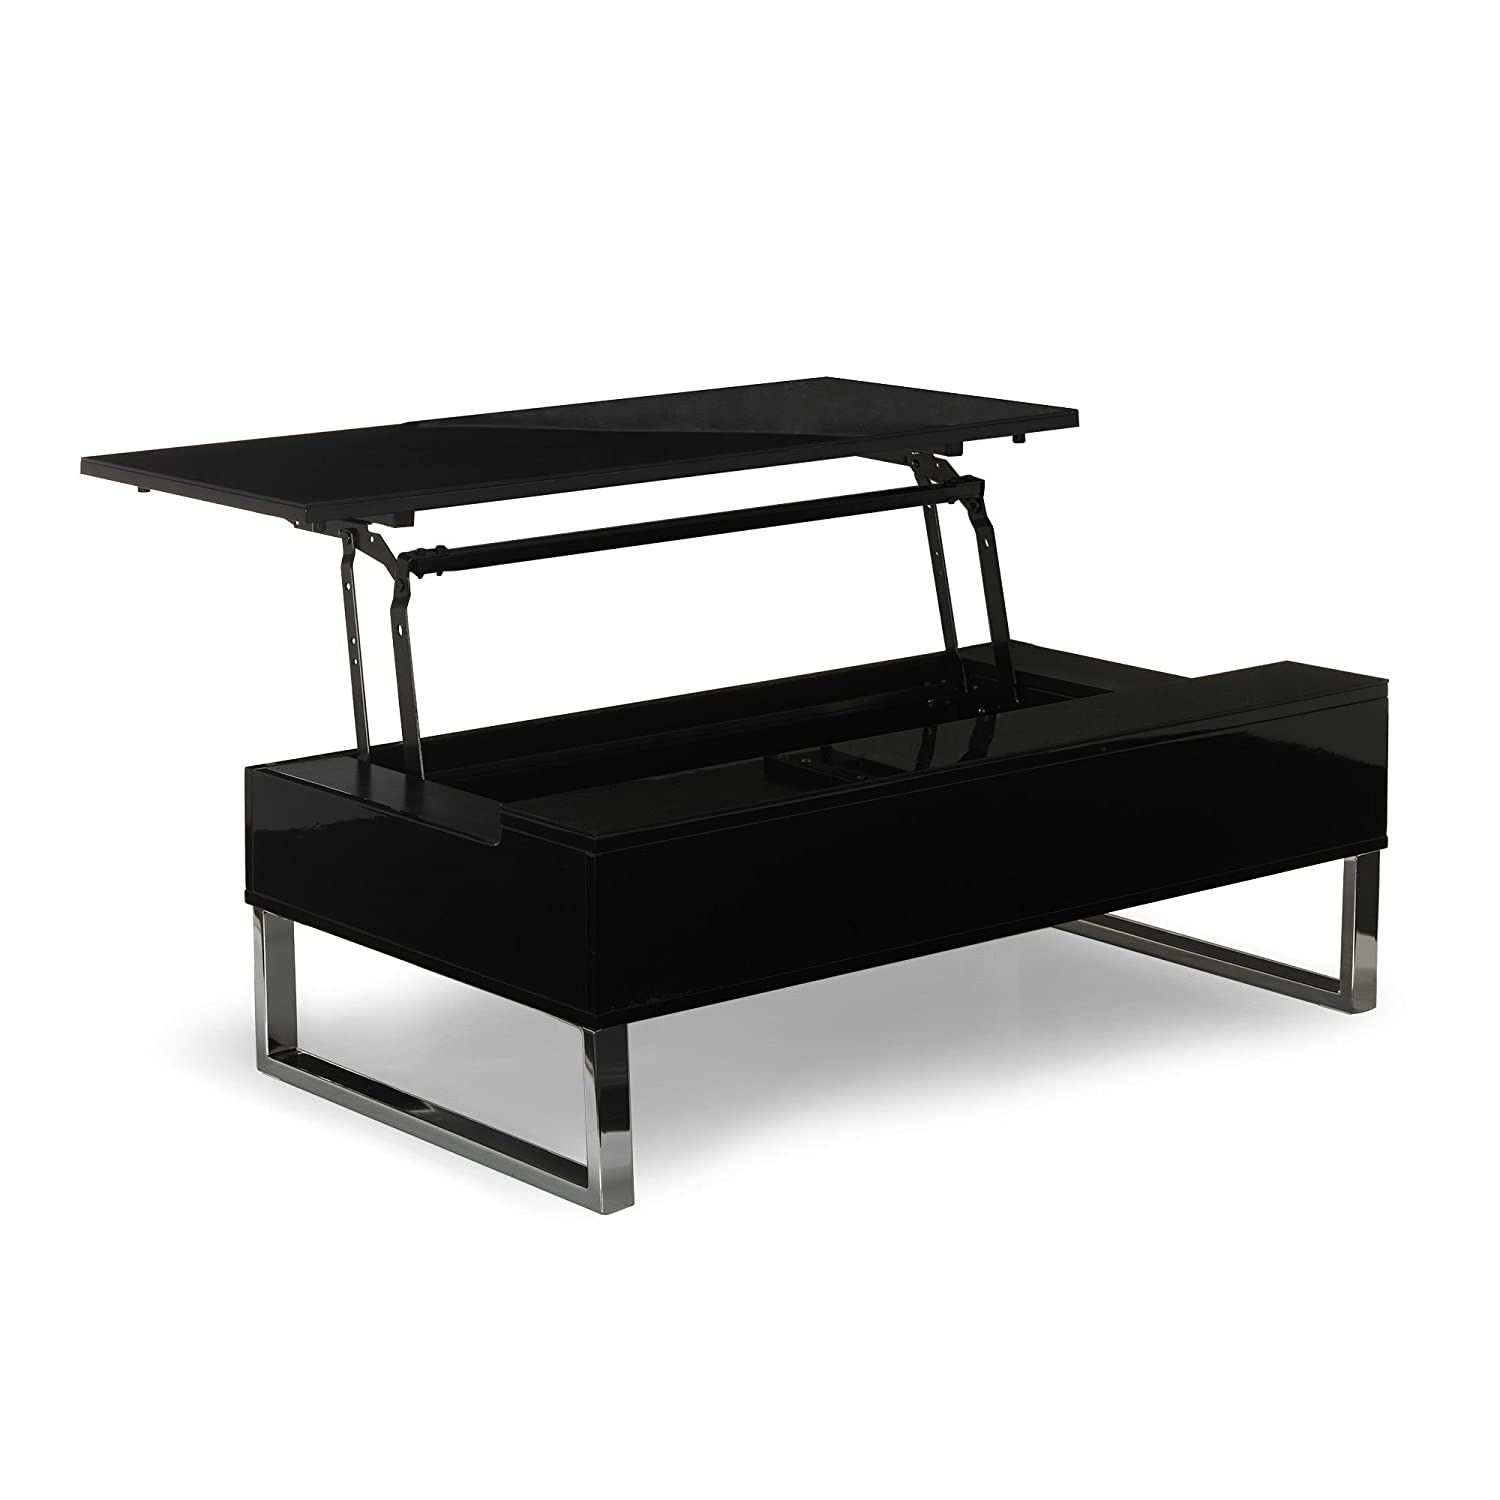 novy table basse avec tablette relevable noire noir alinea. Black Bedroom Furniture Sets. Home Design Ideas